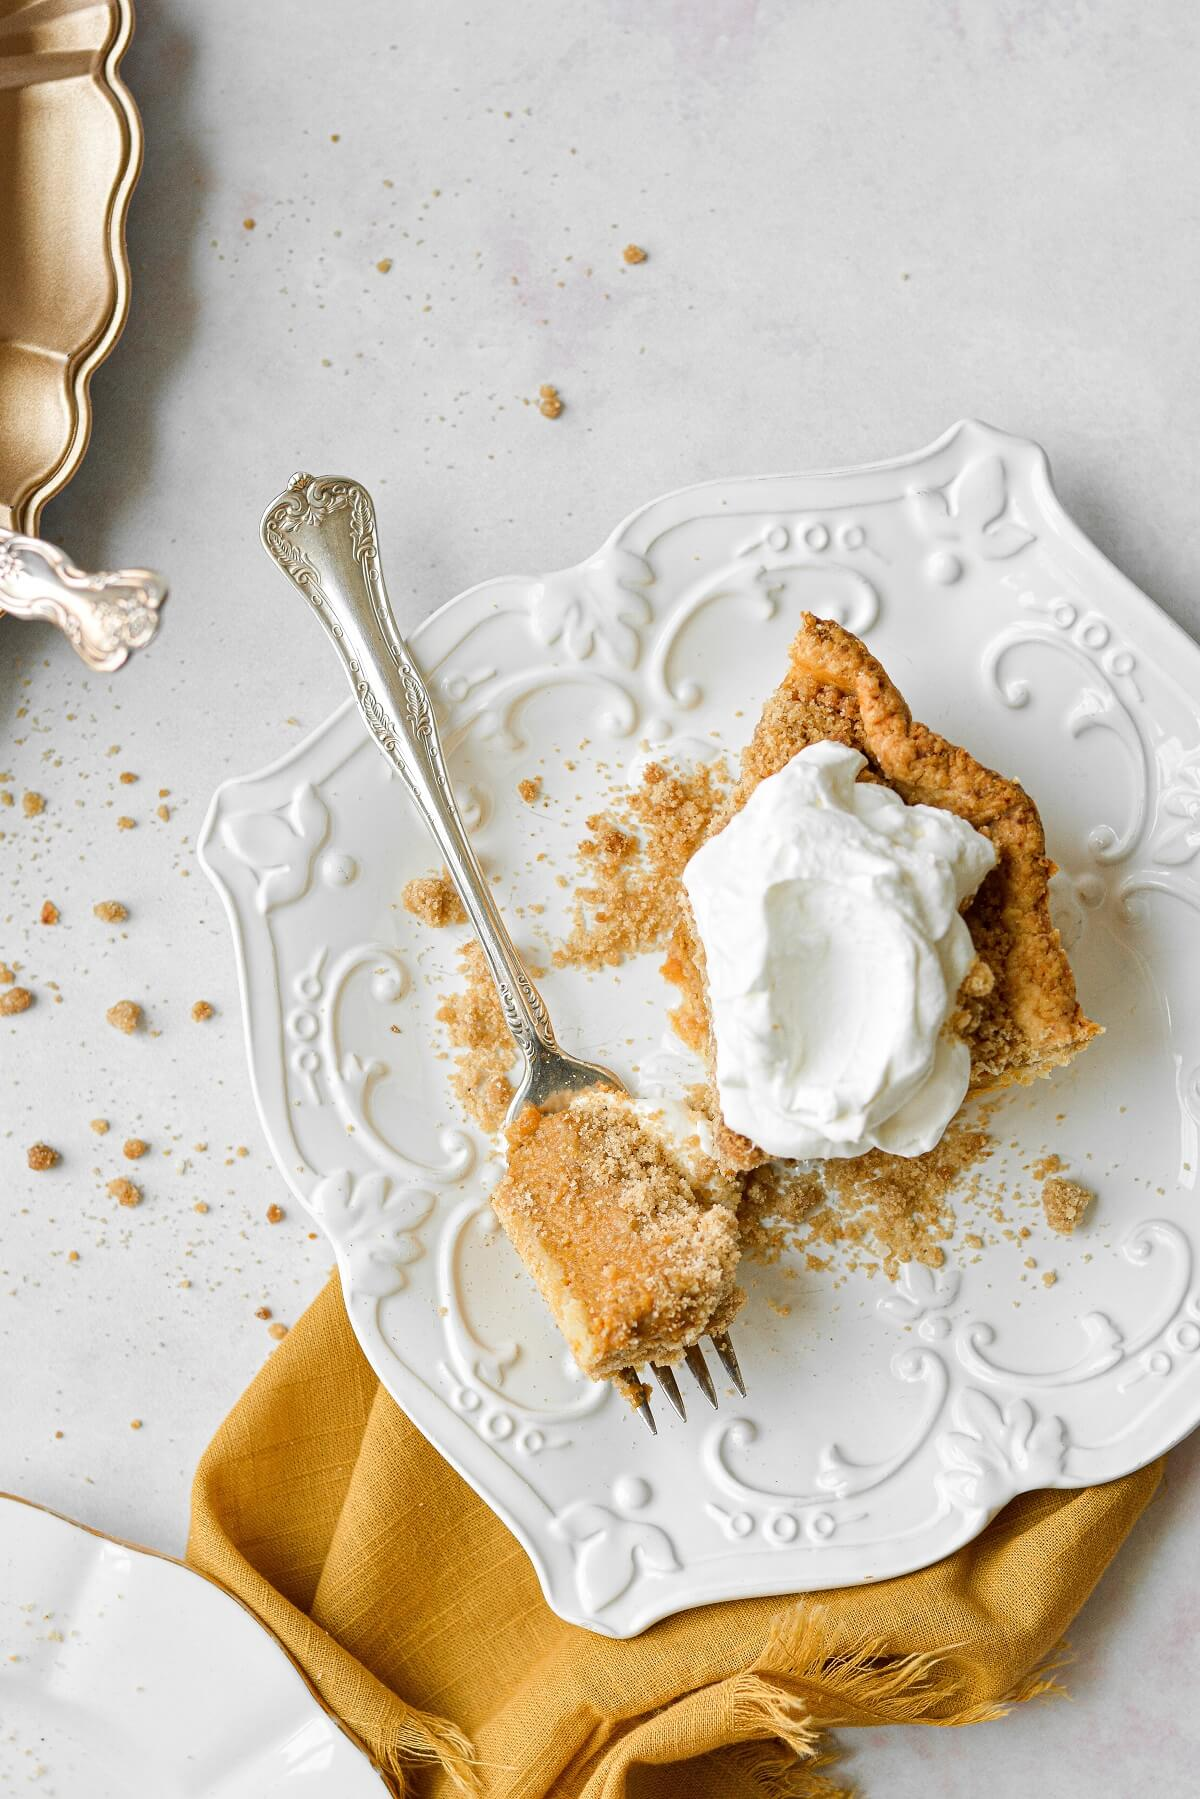 A slice of pumpkin crumb pie on a white plate, topped with whipped cream, with a yellow linen napkin tucked under the plate.